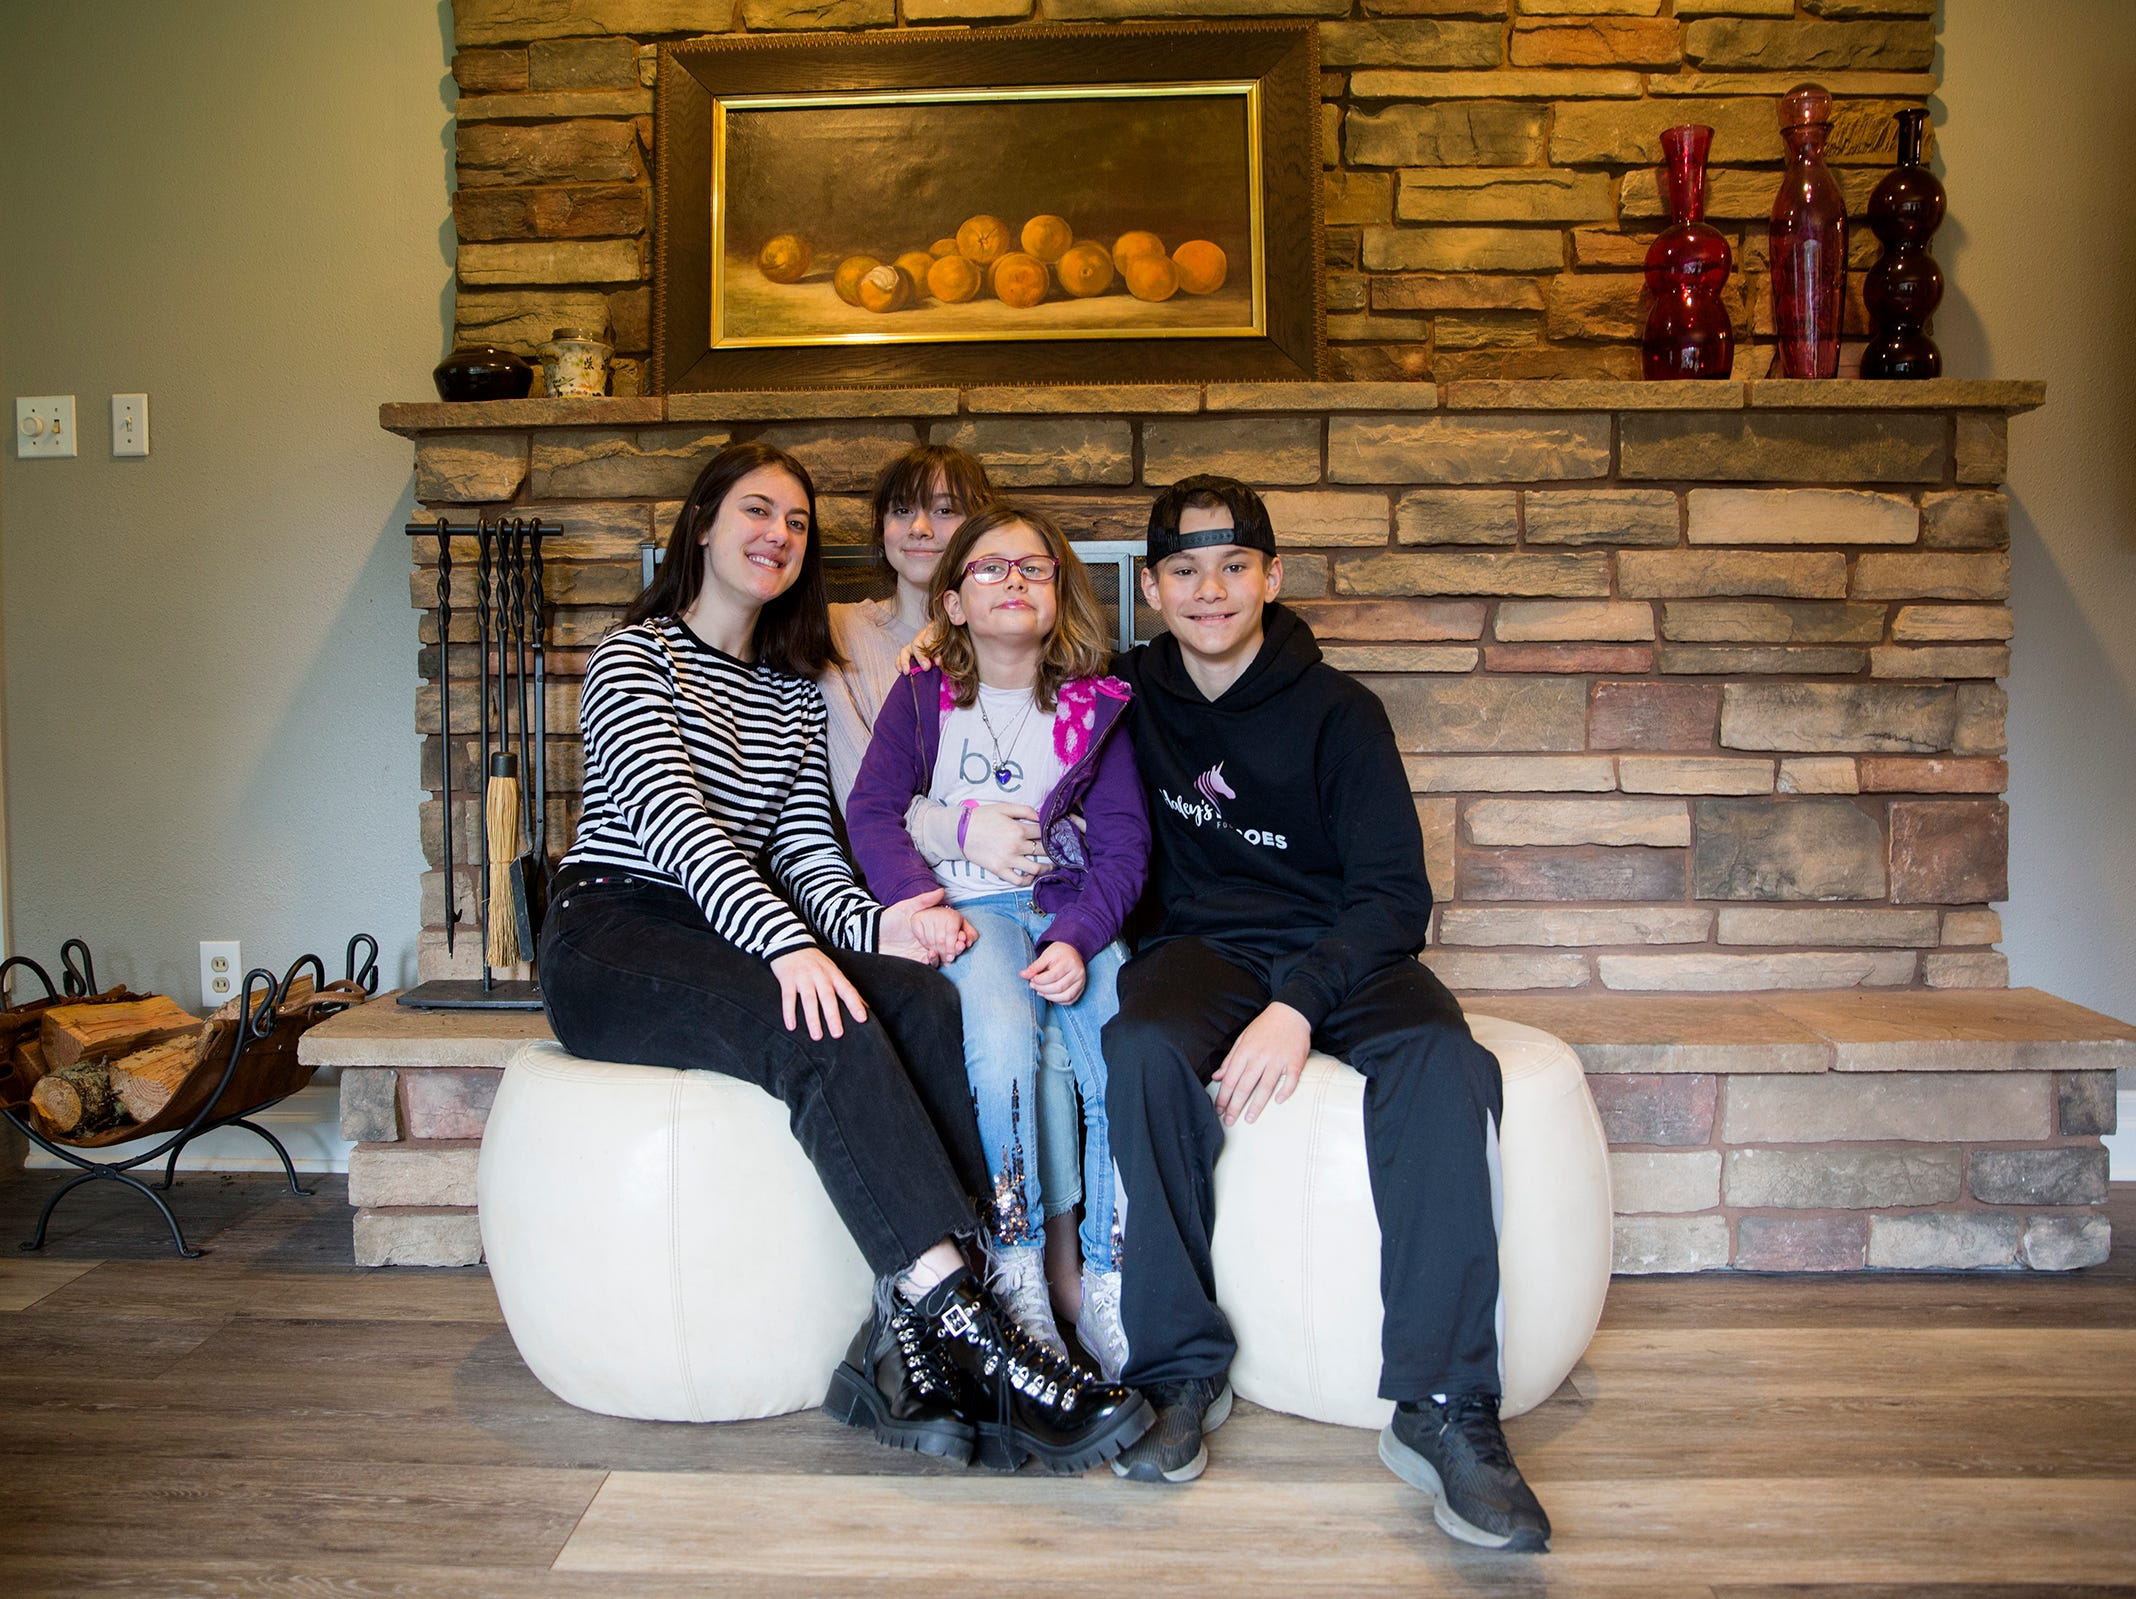 Haley Pollman, 9, (center) and her siblings Audrey, 21, Maddie, 15, and Cole, 11 pose for a photo at their home in Salem on Saturday, Feb. 23, 2019.